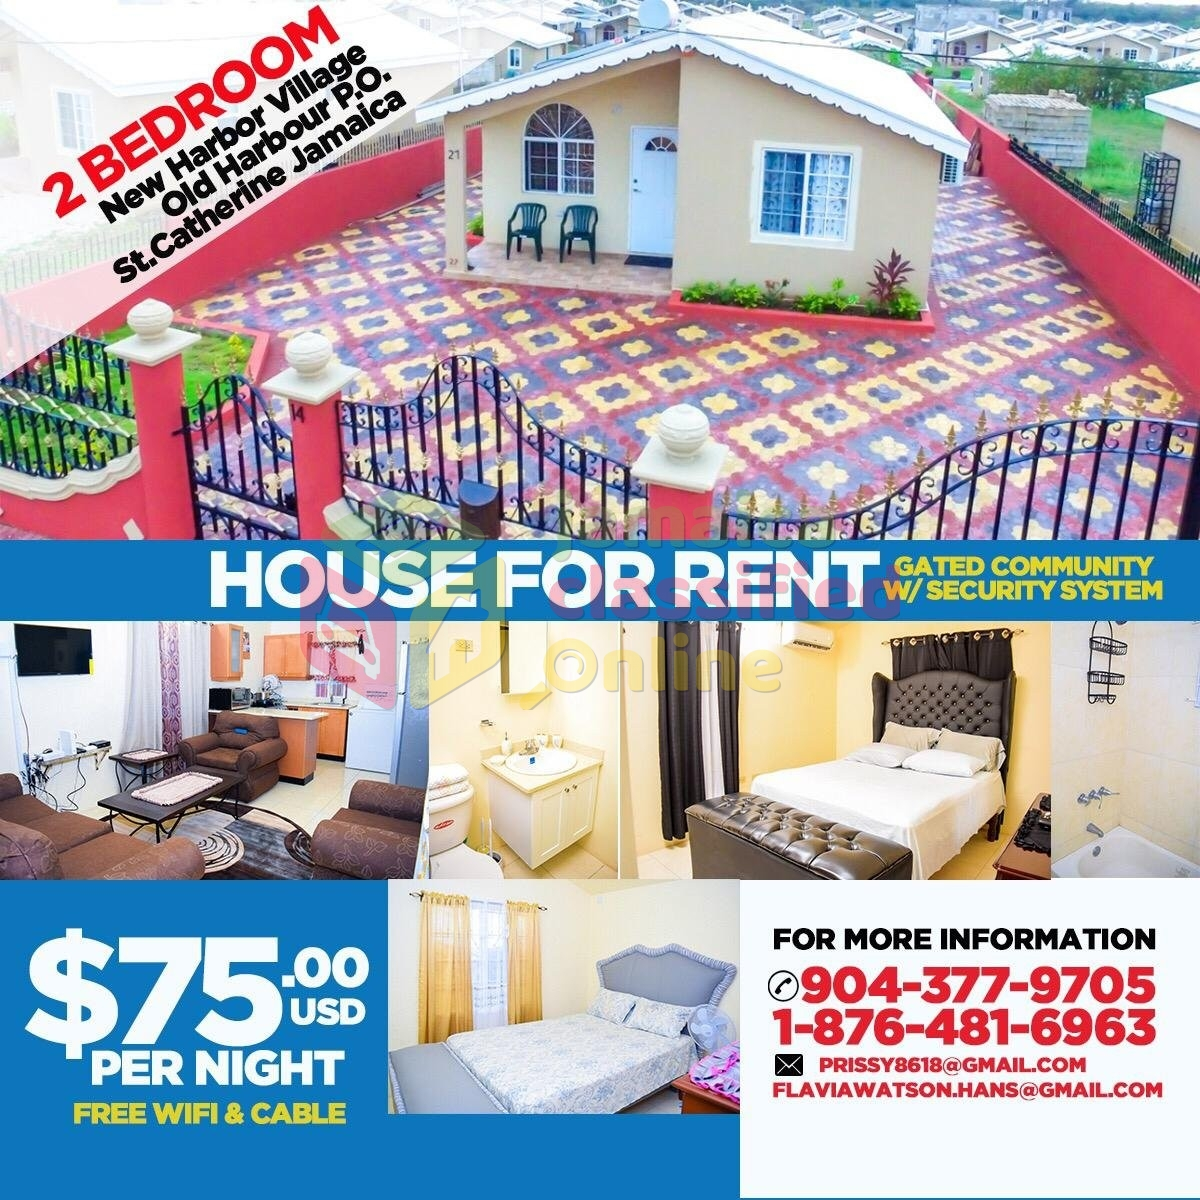 Free Houses For Rent: Fully Furnished House With Free Cable And Internet For